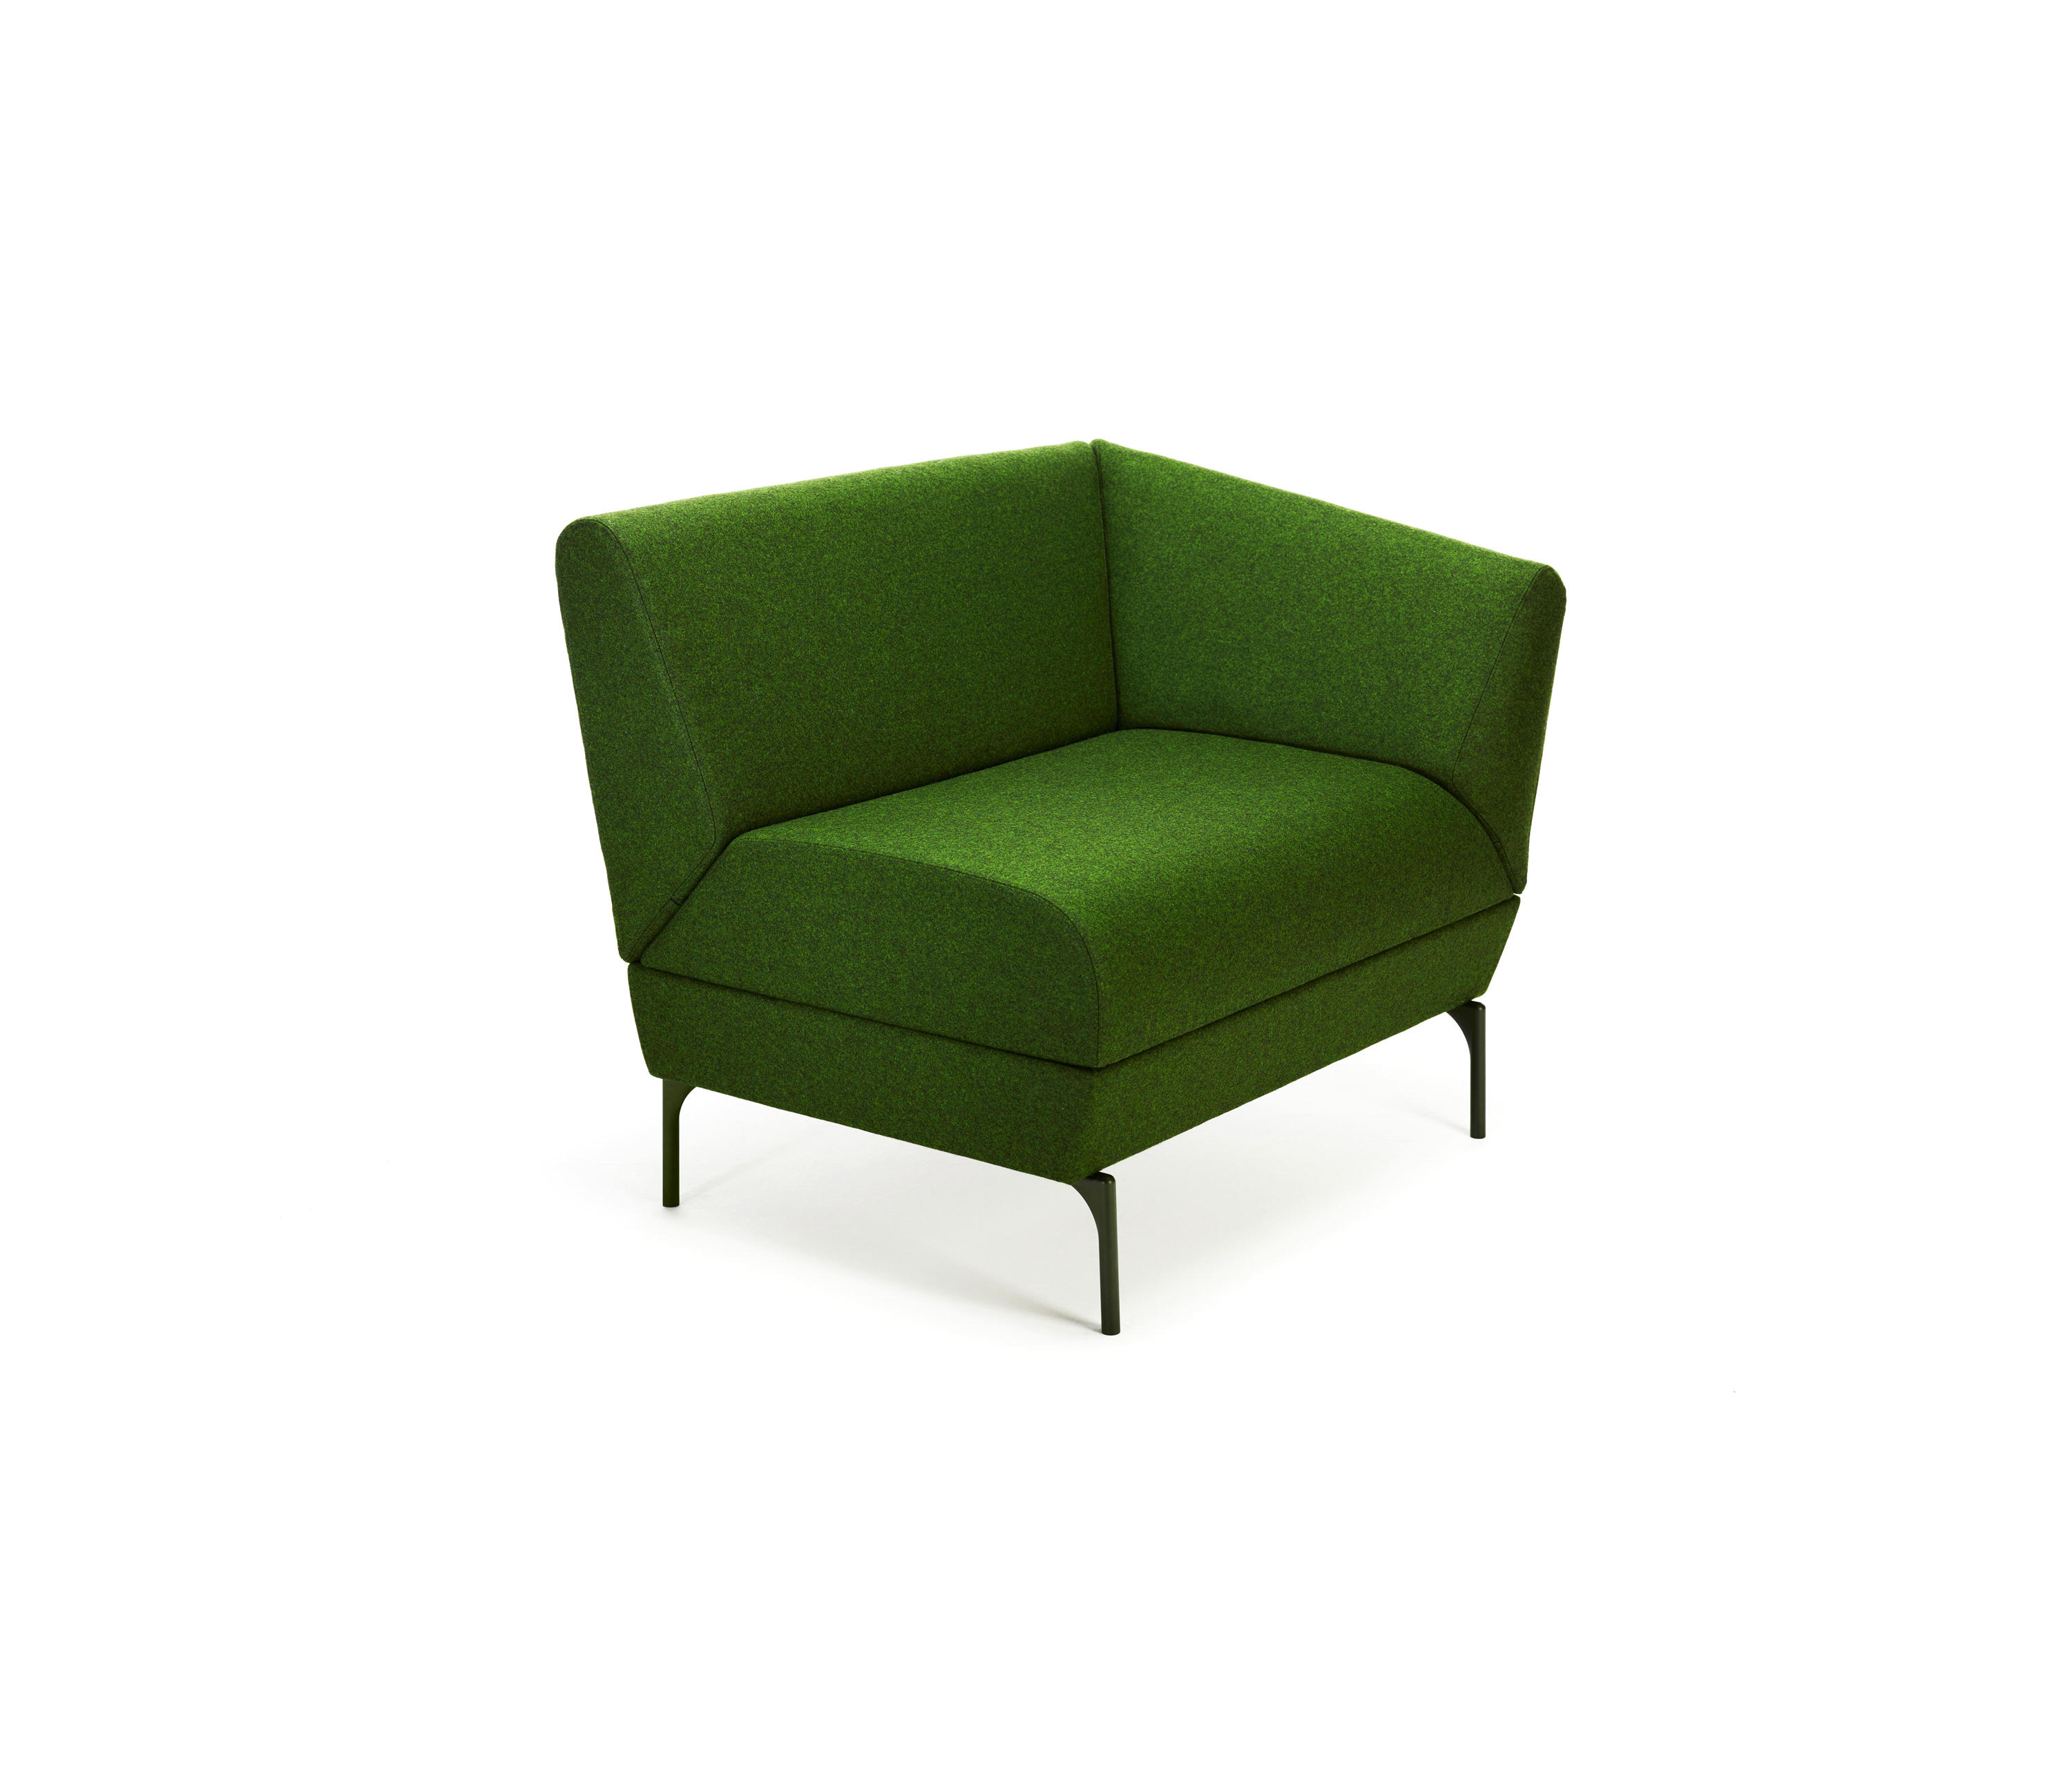 ADDIT RIGHT LEFT UNIT Modular seating elements from Lammhults Architonic